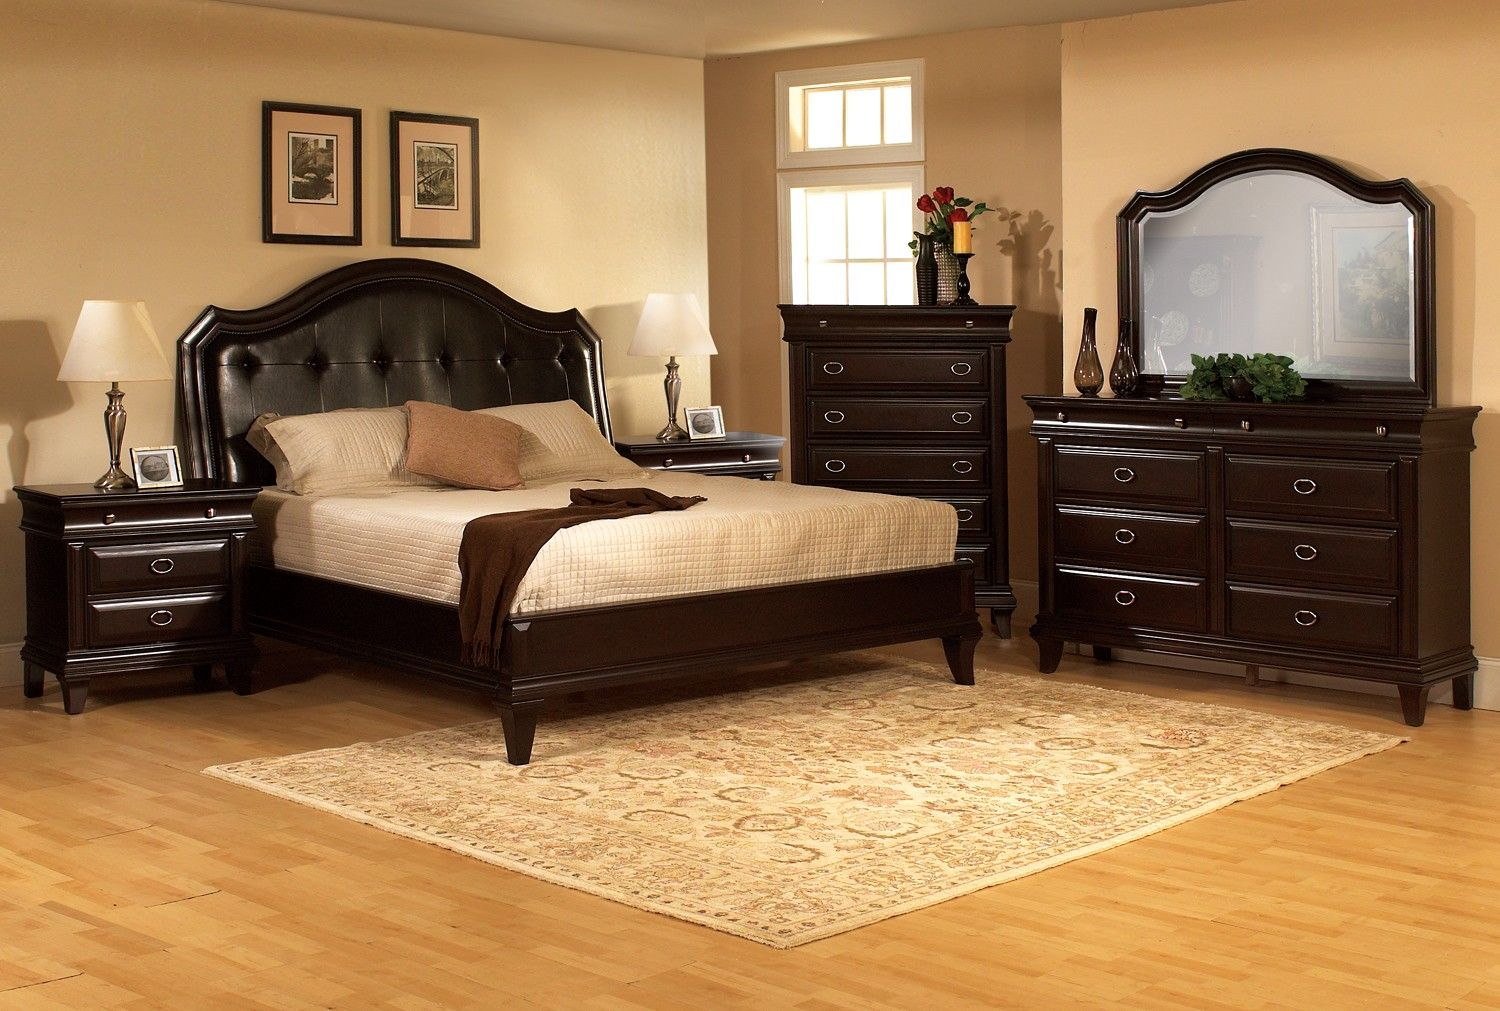 Best The Chicago Collection Bedroom Set From The Room Place 640 x 480